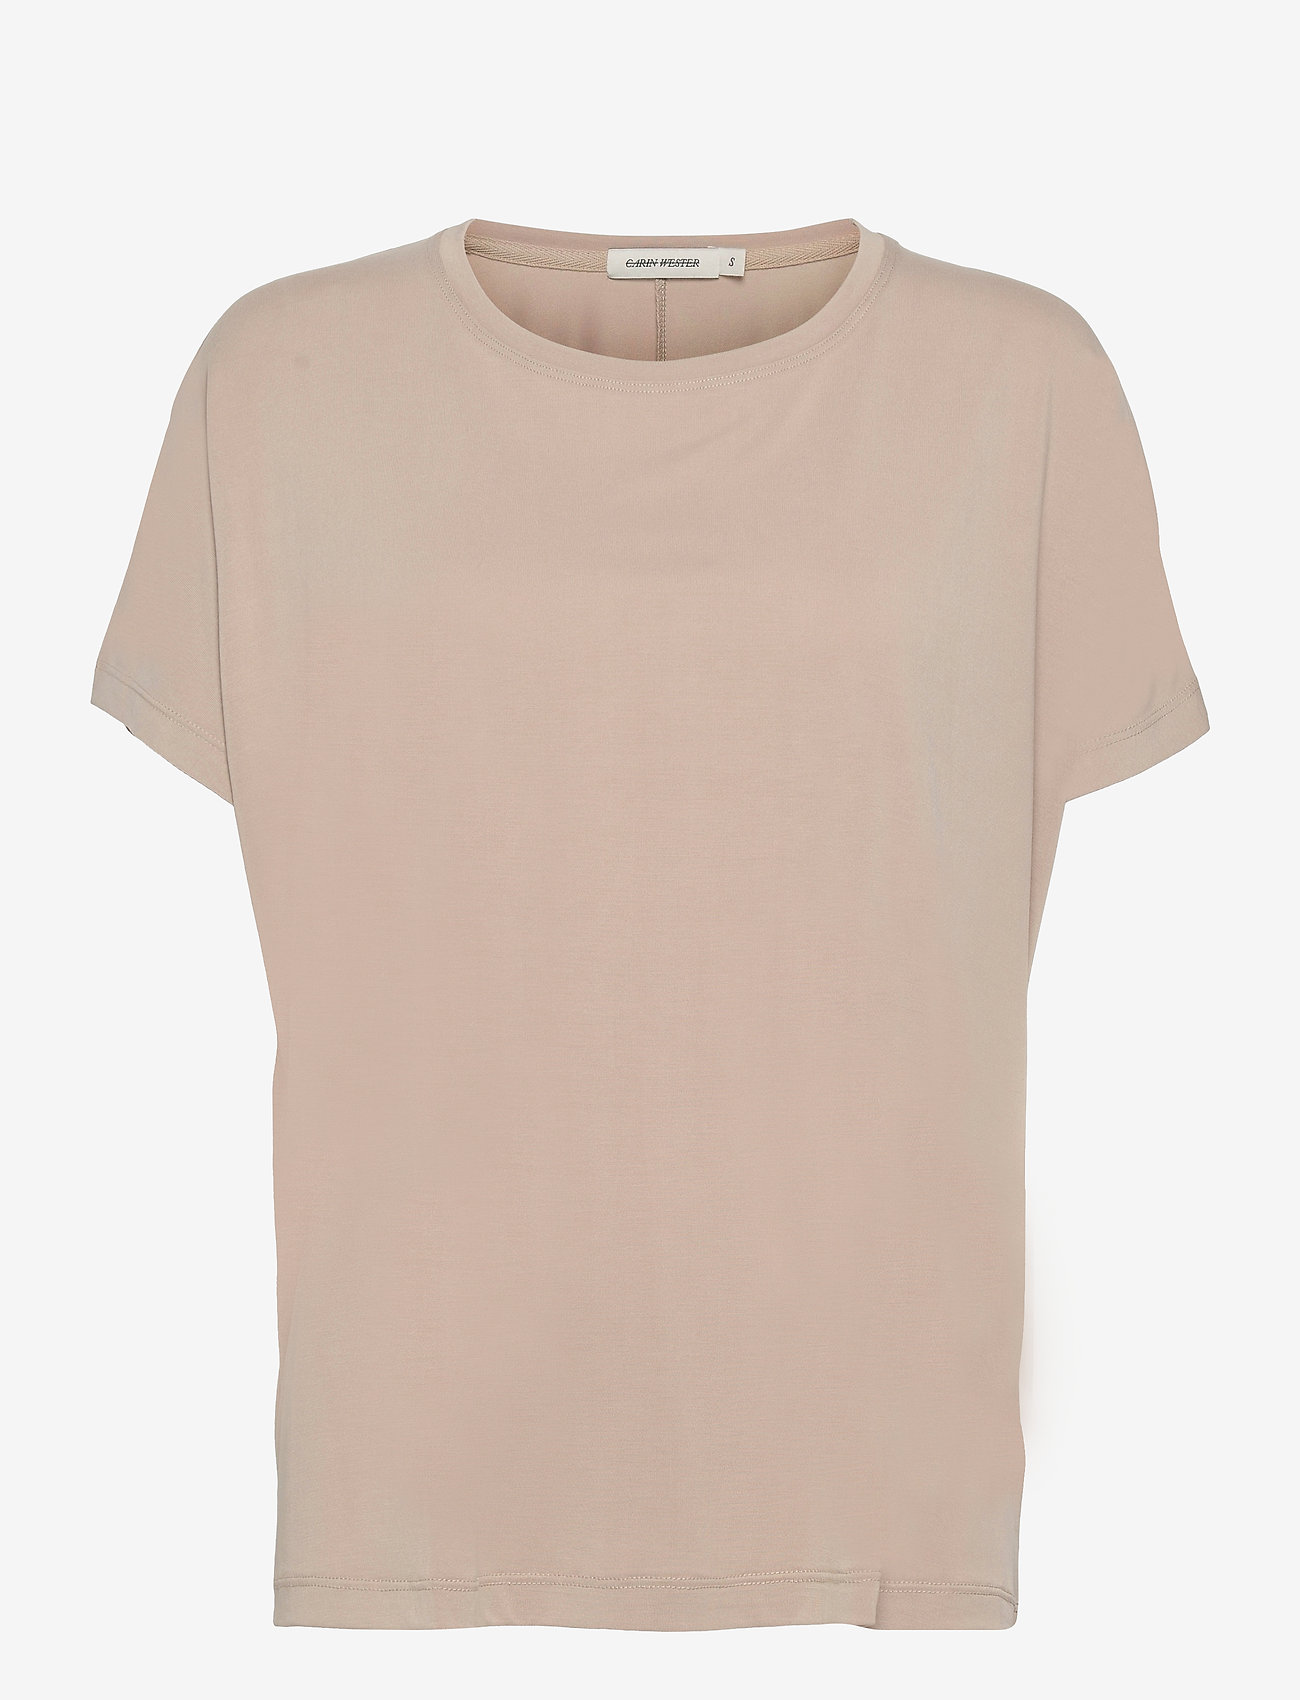 Carin Wester - Shimmer - t-shirts - beige - 1